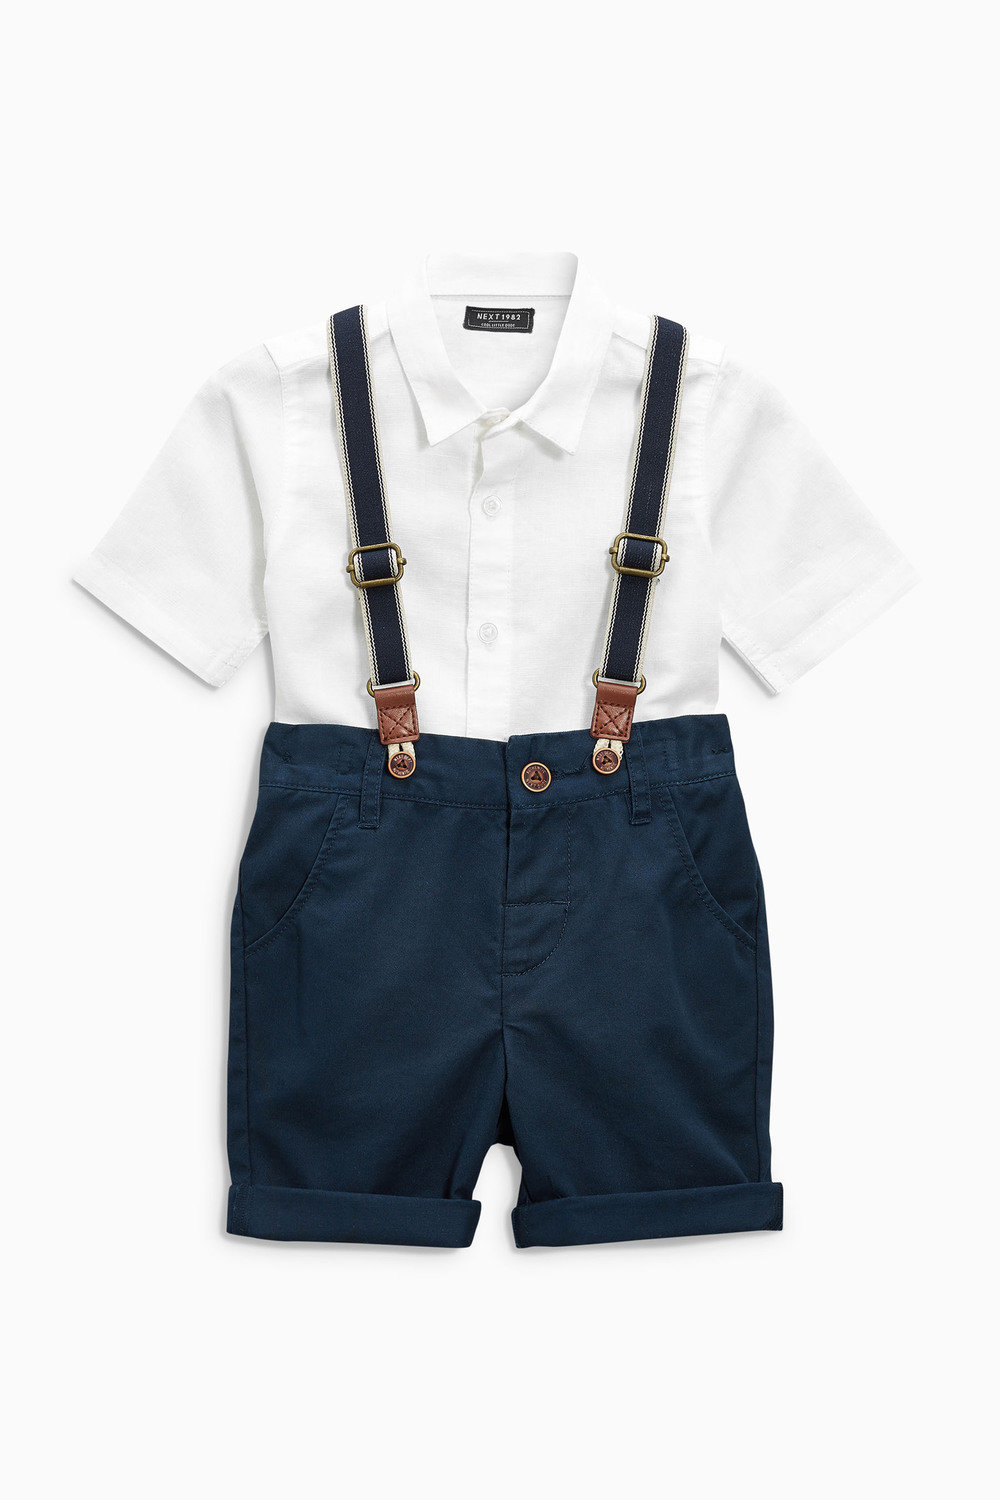 8a3382f06c6e Next Shirt And Shorts Set With Braces (3mths-6yrs) Online